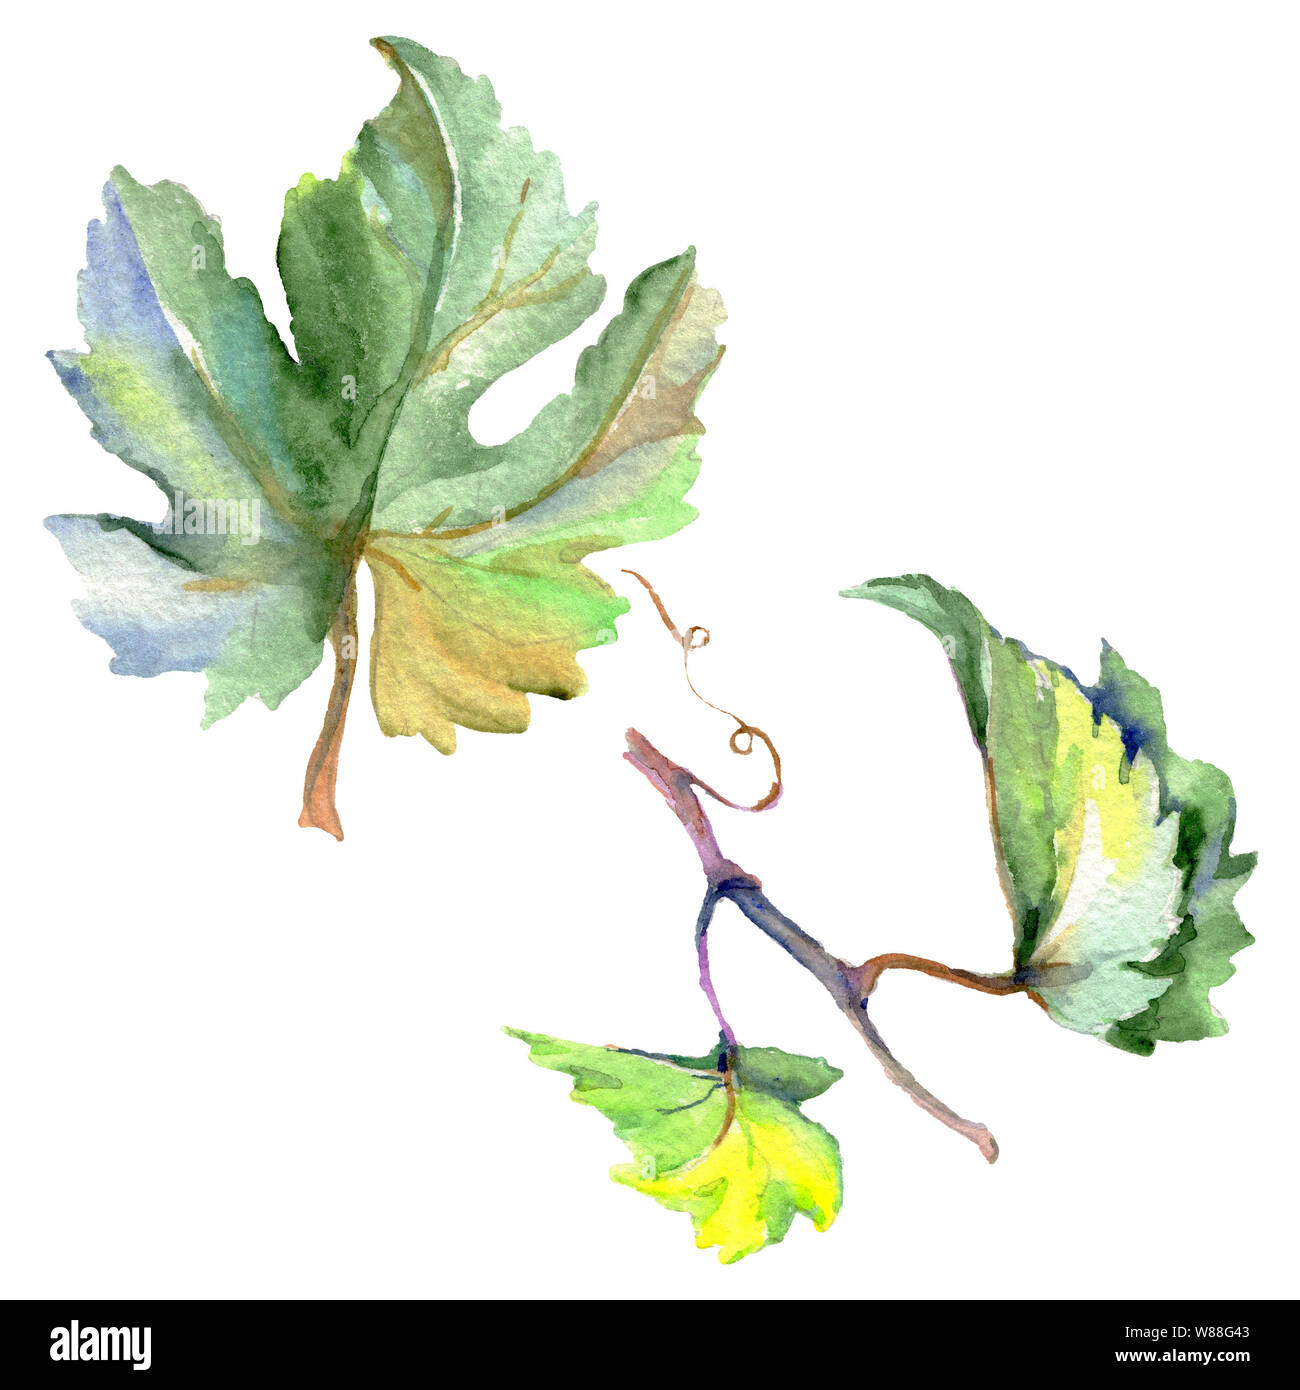 Branch Of Green Vine Leaves Watercolor Background Illustration Set Isolated Grape Illustration Element Stock Photo Alamy